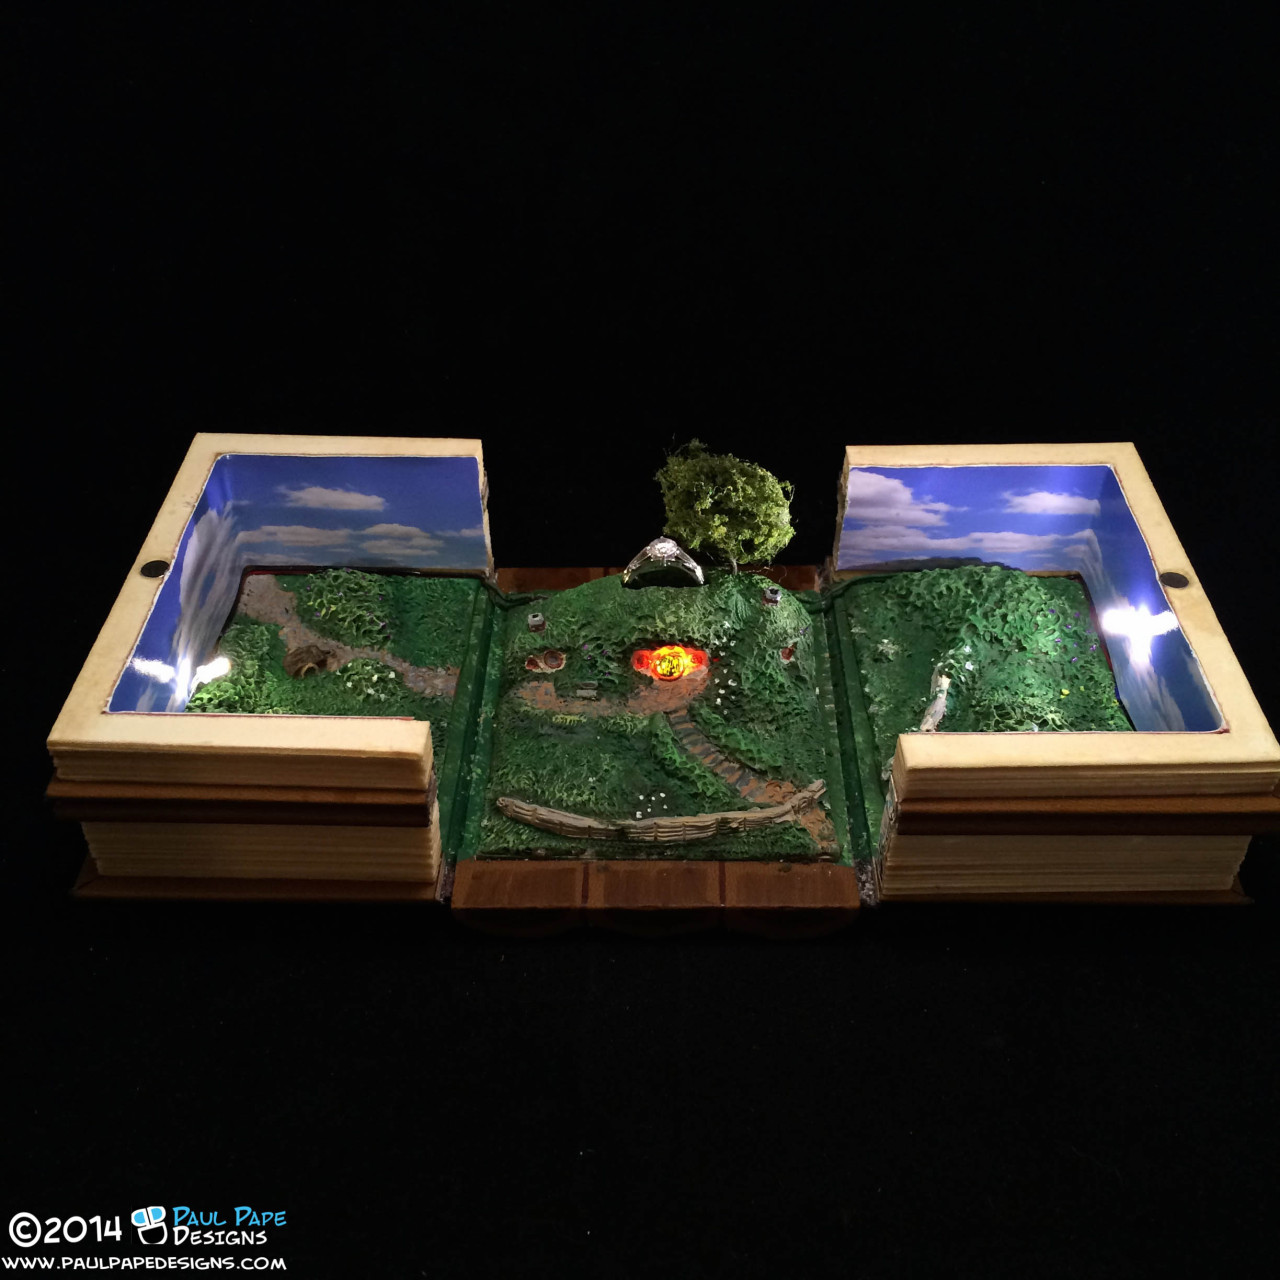 Lord of the Rings Bad End Custom Engagement Ring Box by Paul Pape Designs. This is a ring box based on the J.R.R. Tolkien series the Lord of the Rings. It is a series of books, and then when you open the books you're presented with Bag End in the Shire, and the ring is situated above Frodo's house.